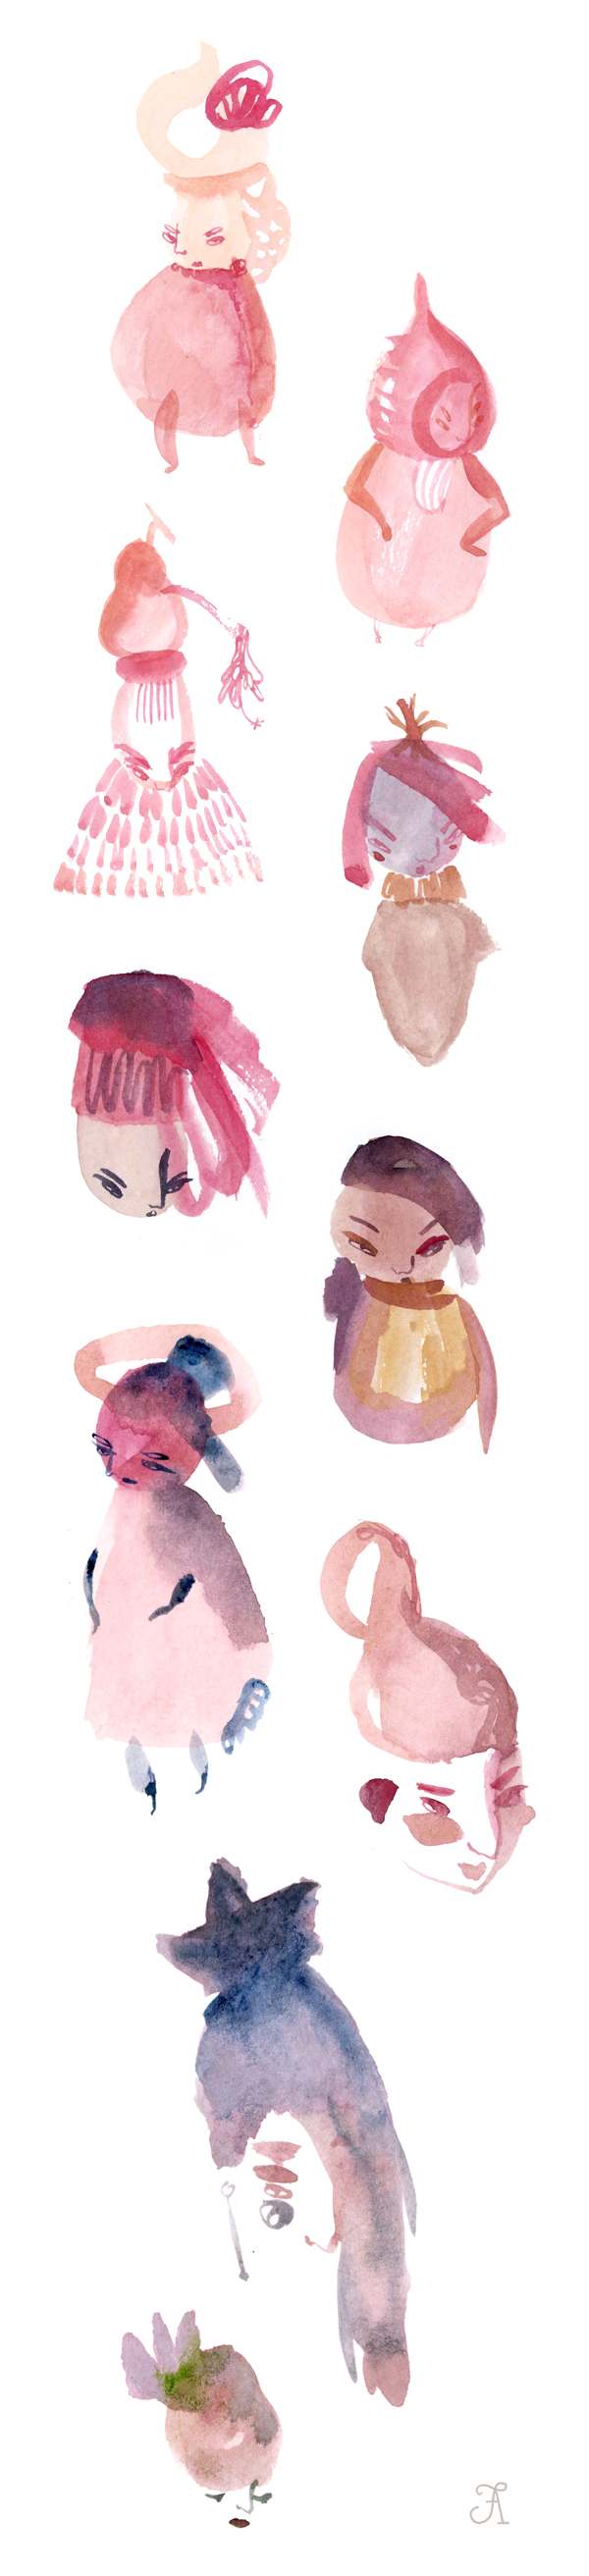 NBNH-watercolorsketches-5